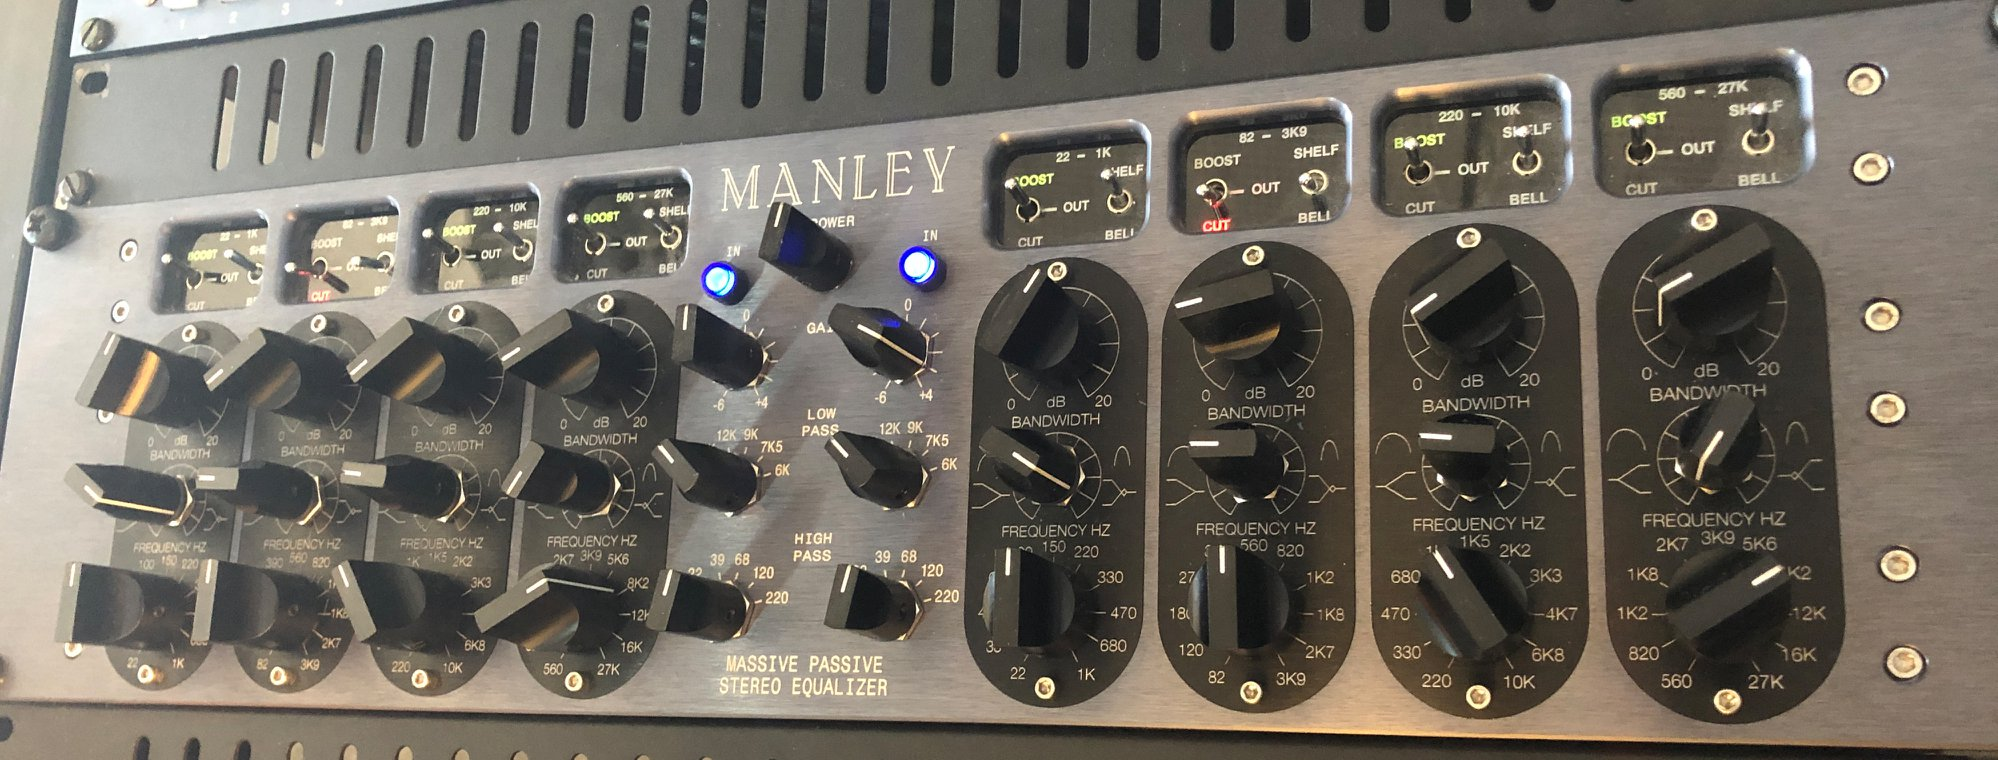 Manley Massive-Passive: A true legend of EQ´s. The low end, the mids, the heights. Everything sounds fantastic. Foto: privat